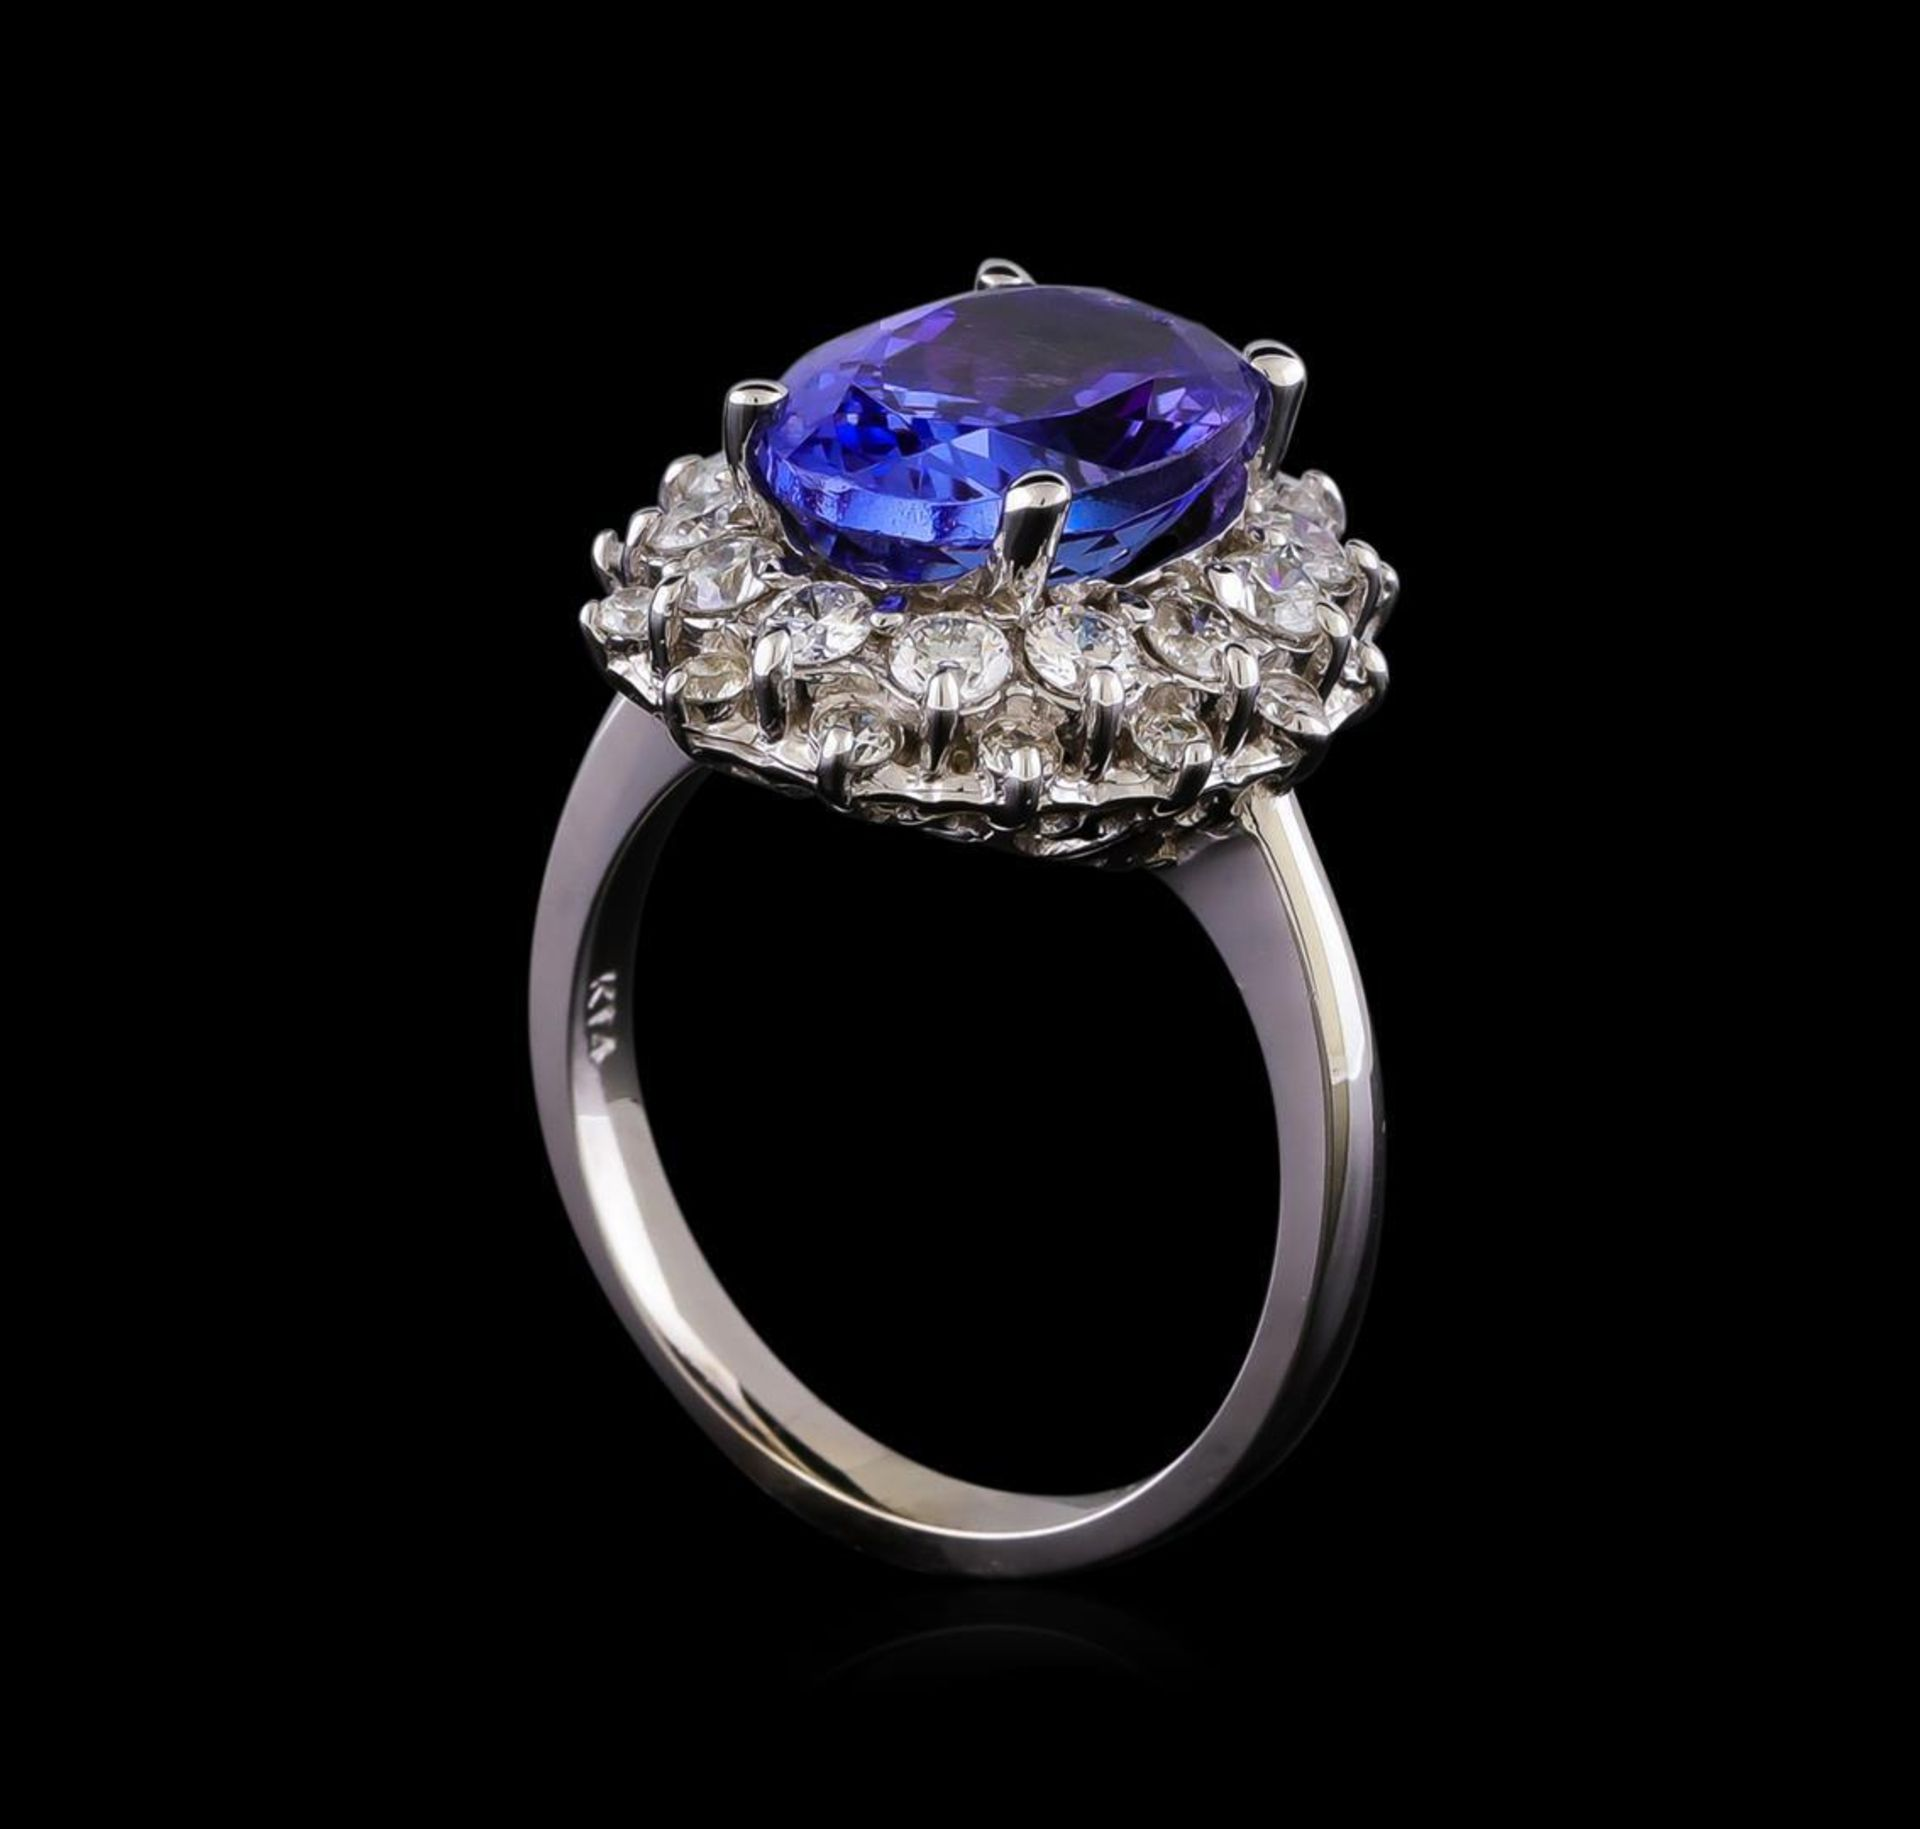 5.53 ctw Tanzanite and Diamond Ring - 14KT White Gold - Image 4 of 5